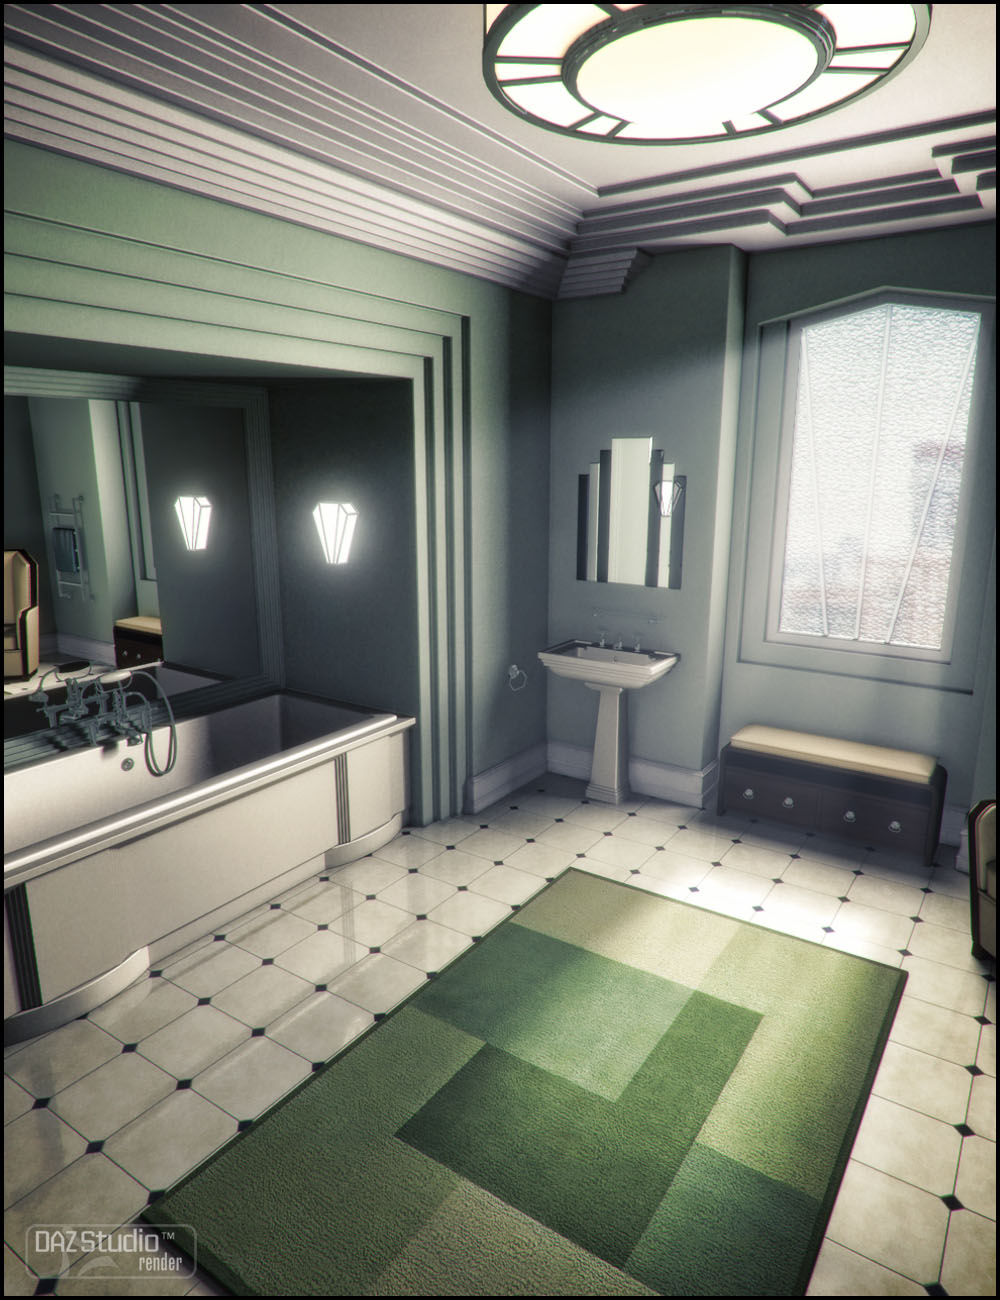 Classic Deco Eclectic 2 by: Jack Tomalin, 3D Models by Daz 3D